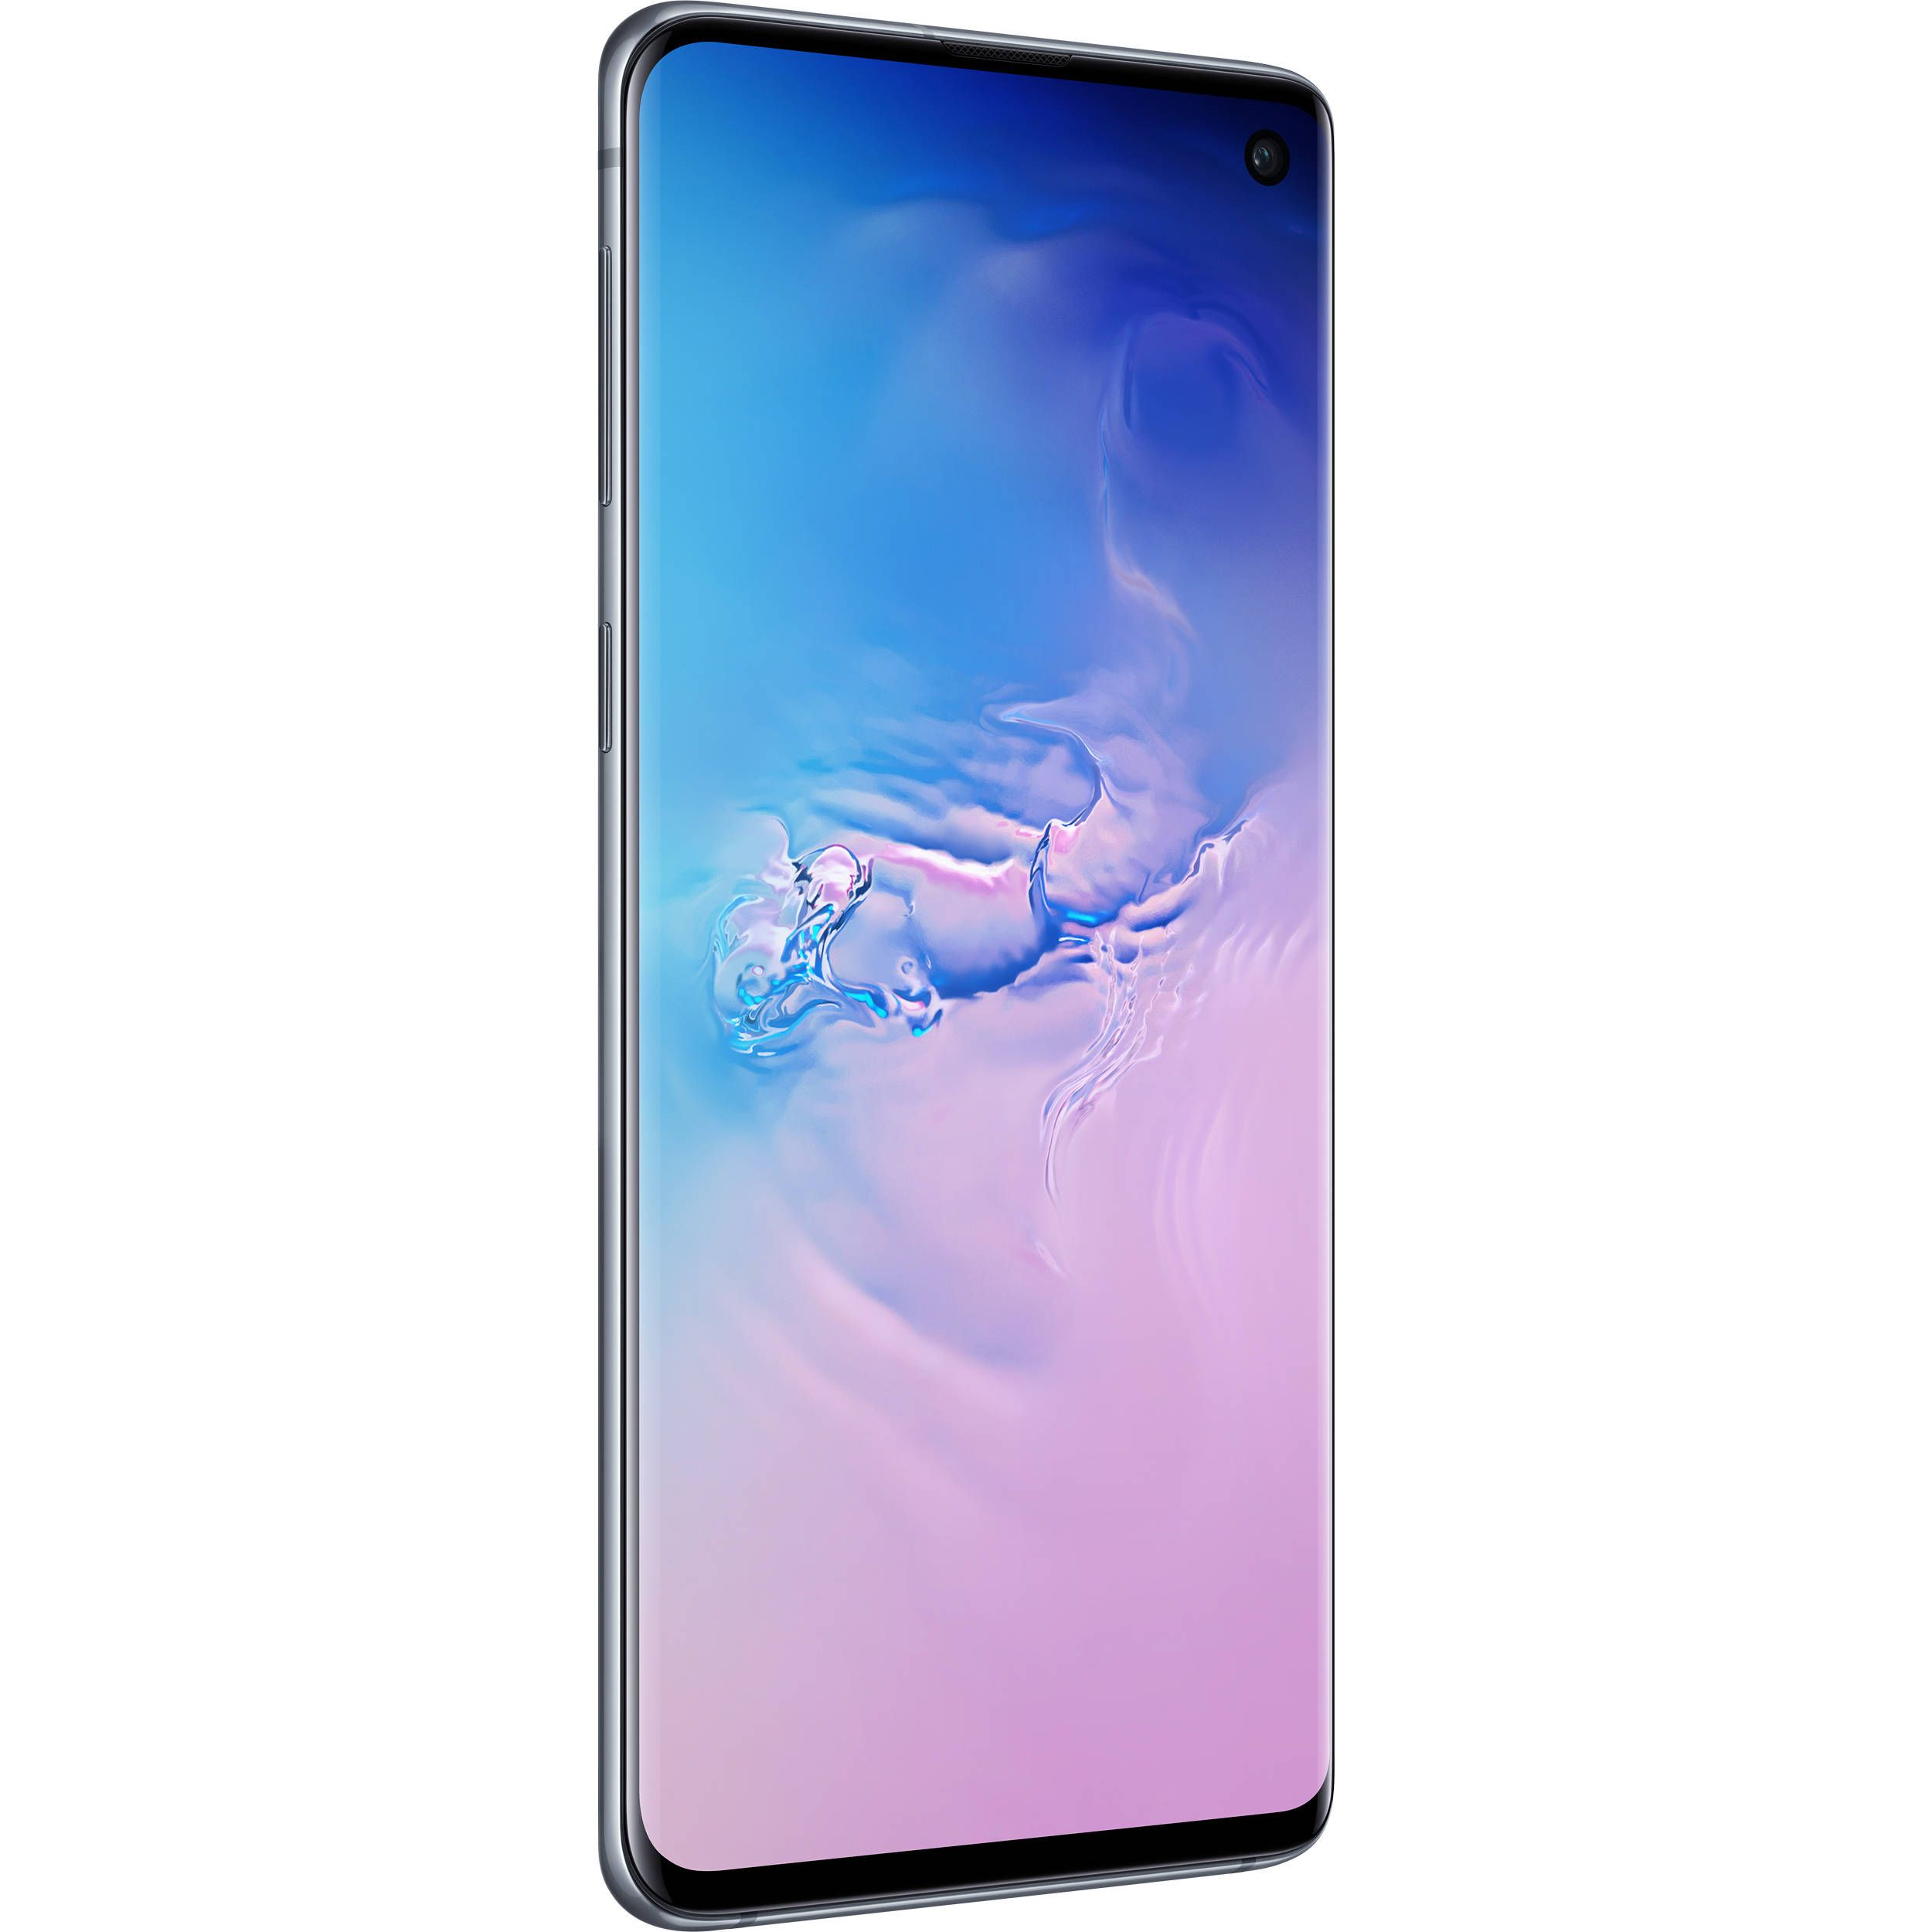 Brand new Samsung Galaxy S10 to one lucky winner Contest